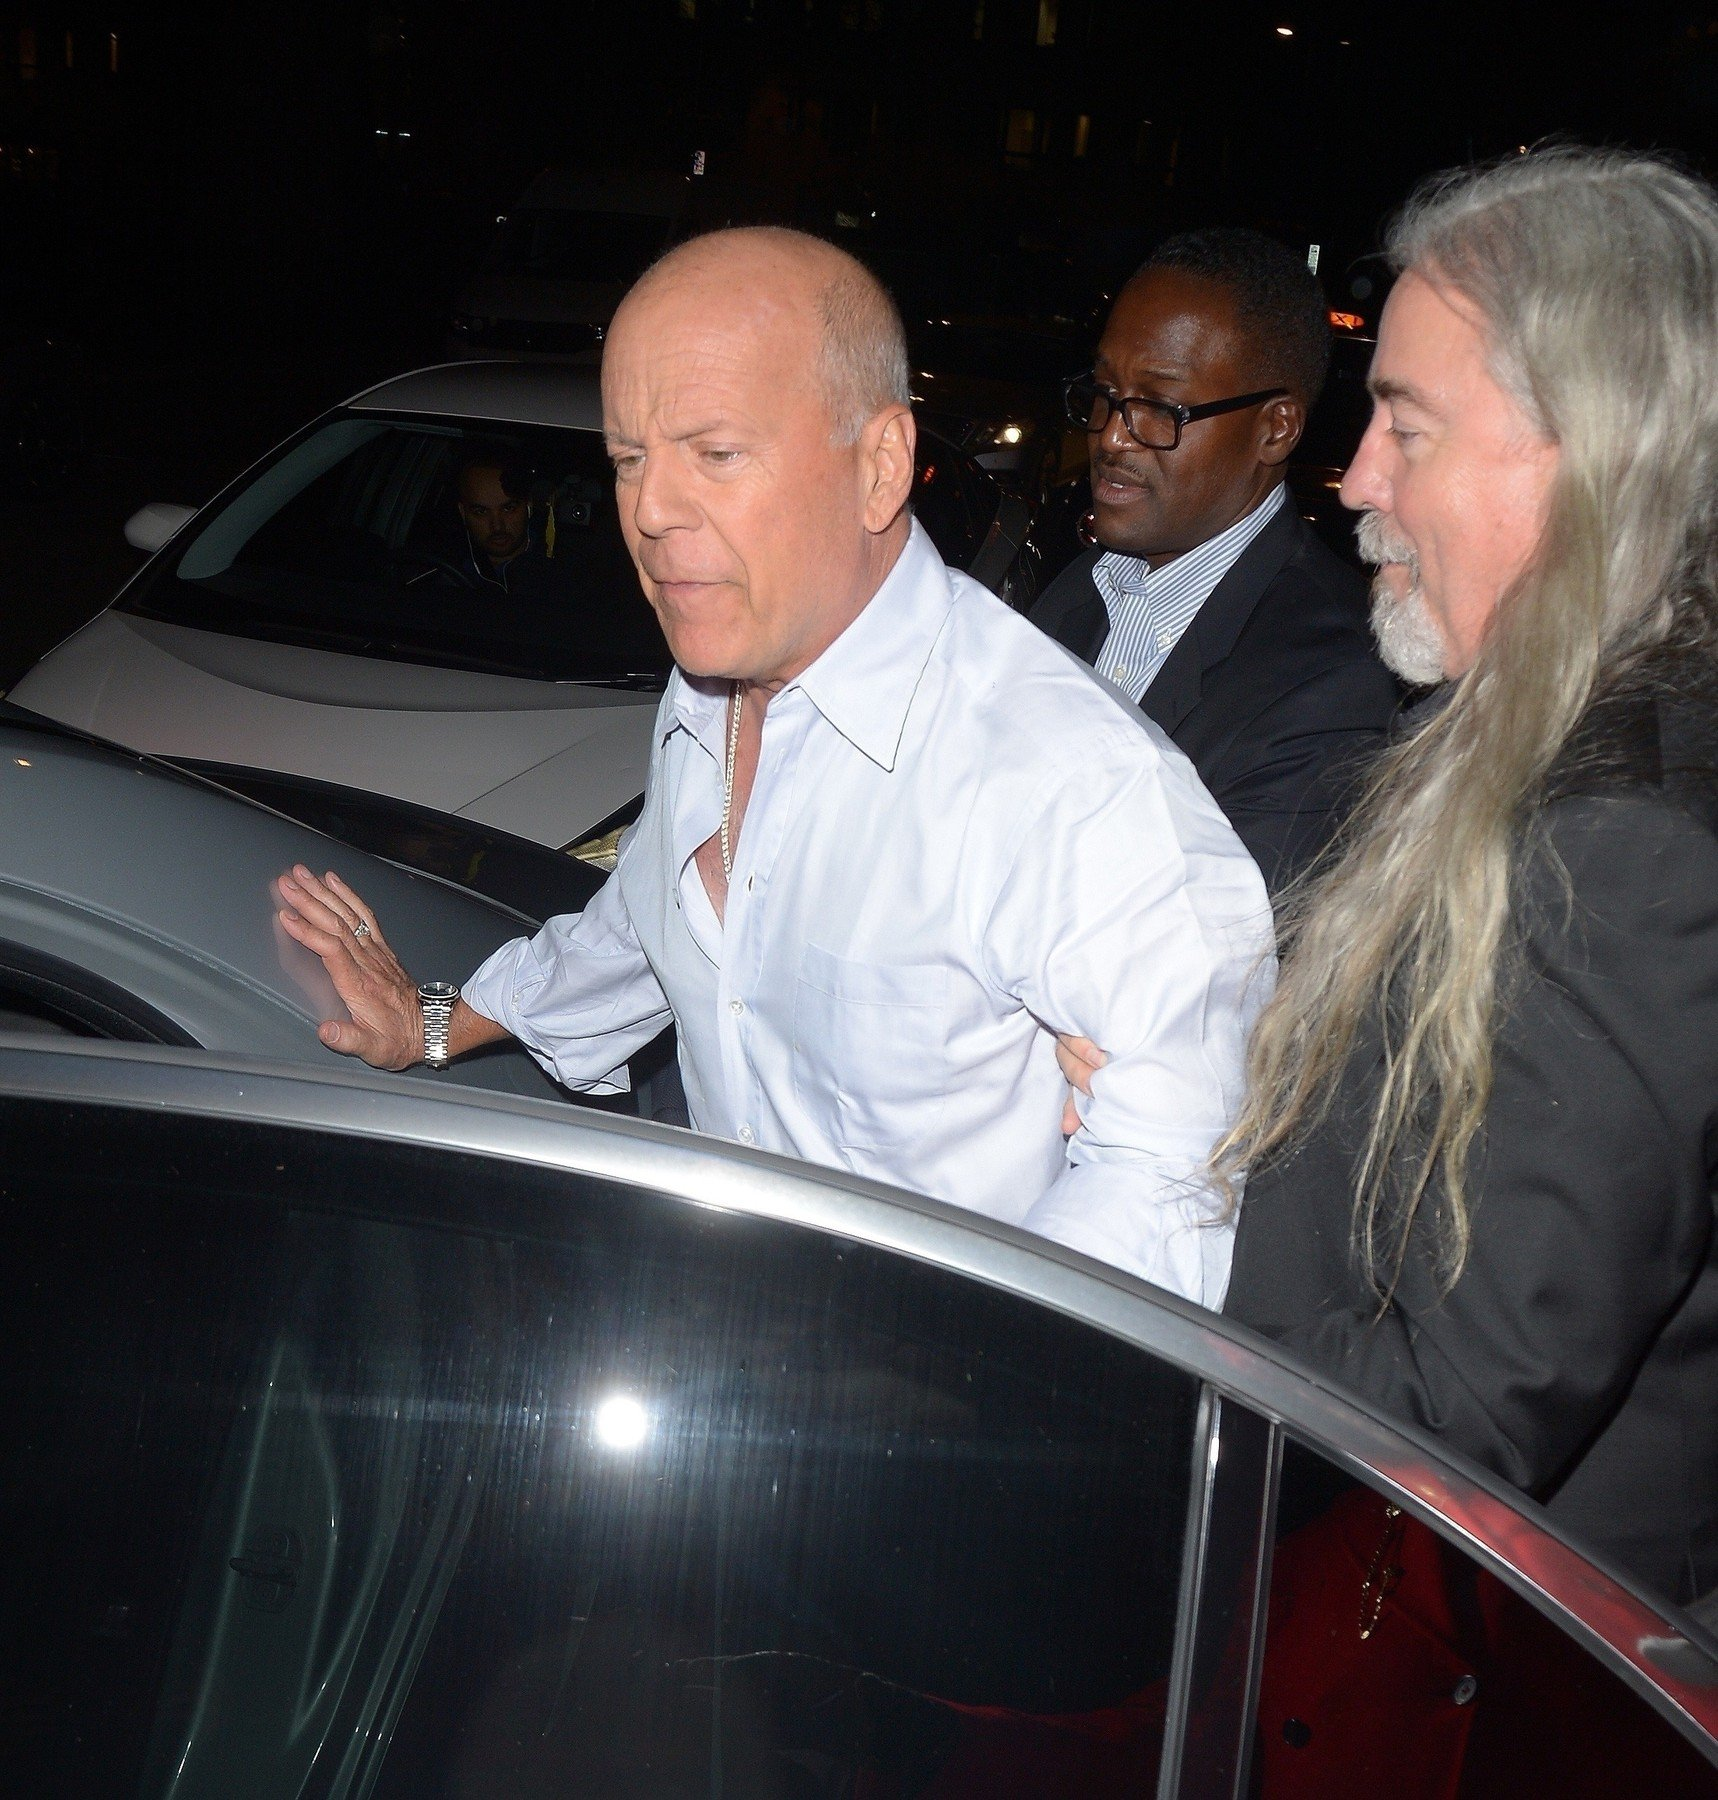 BGUK_1451155 - London, UNITED KINGDOM  - A Very Intoxicated Bruce Willis is seen being helped into his car as he leaves Annabel's Private Members Club  Pictured: Bruce Willis    *UK Clients - Pictures Containing Children Please Pixelate Face Prior To Publication*, Image: 405745945, License: Rights-managed, Restrictions: , Model Release: no, Credit line: Profimedia, Xposurephotos